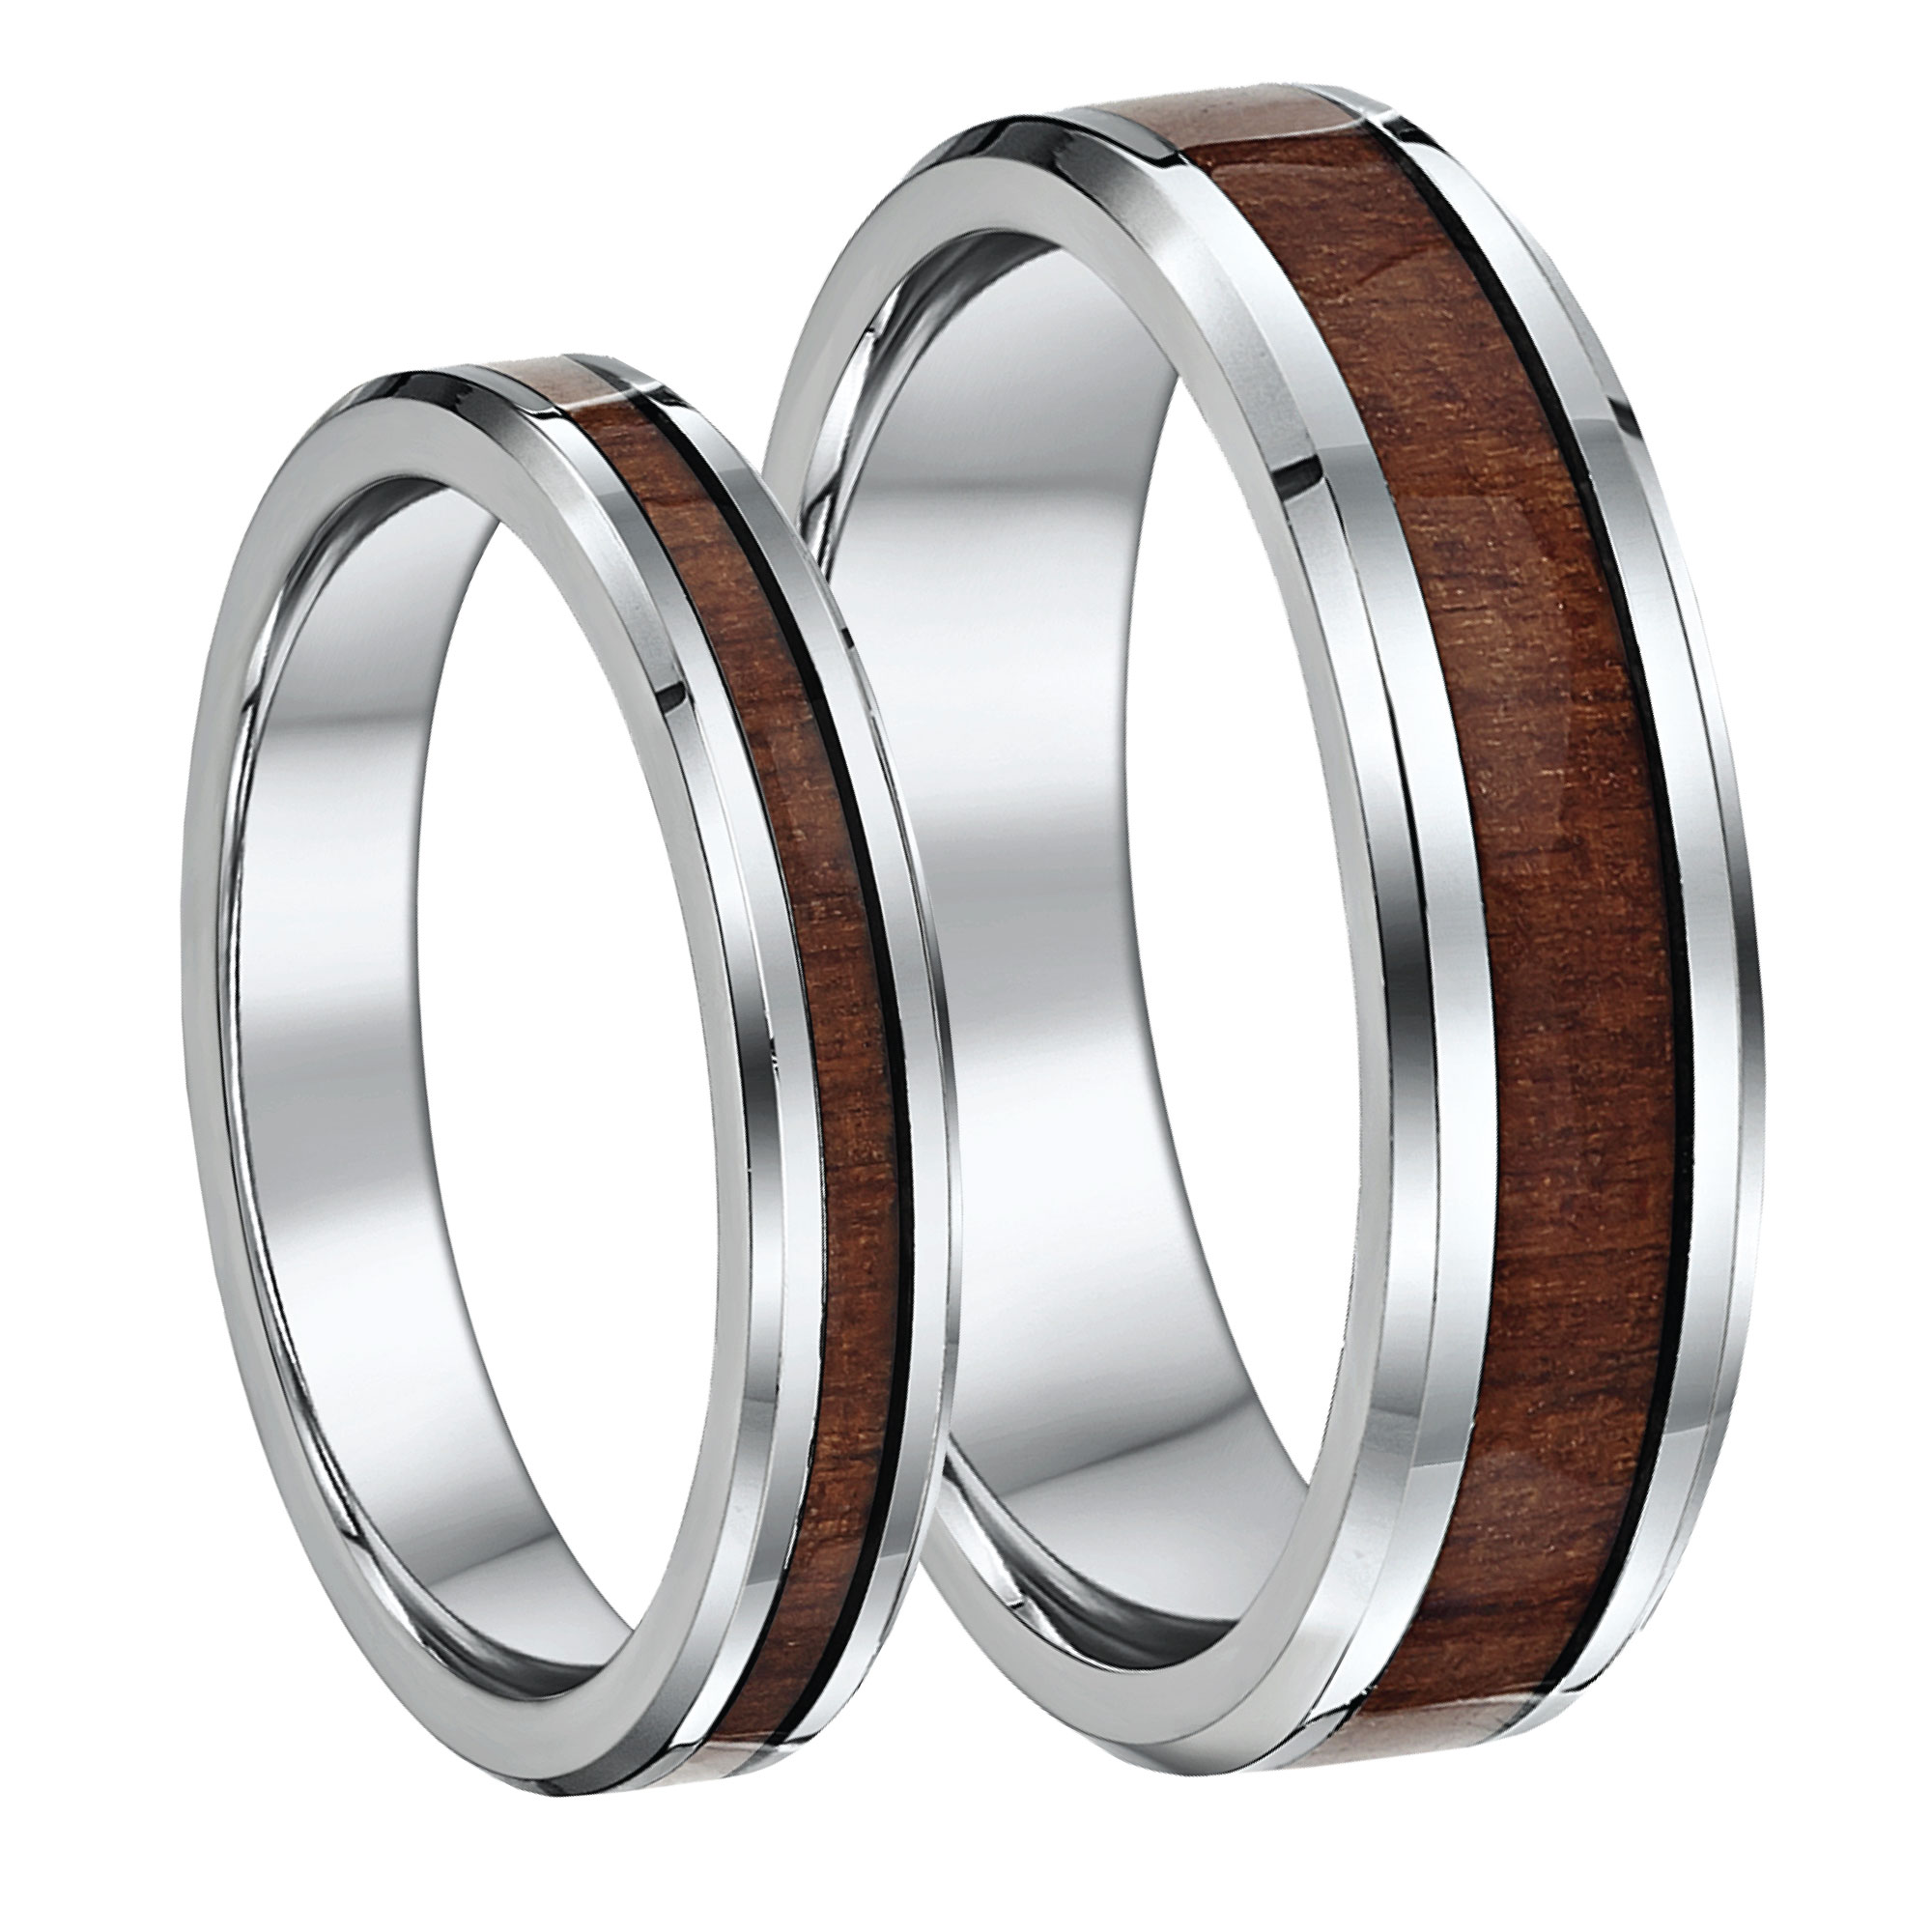 His hers titanium wedding ring band set 46mm with wood for Wedding ring sets uk